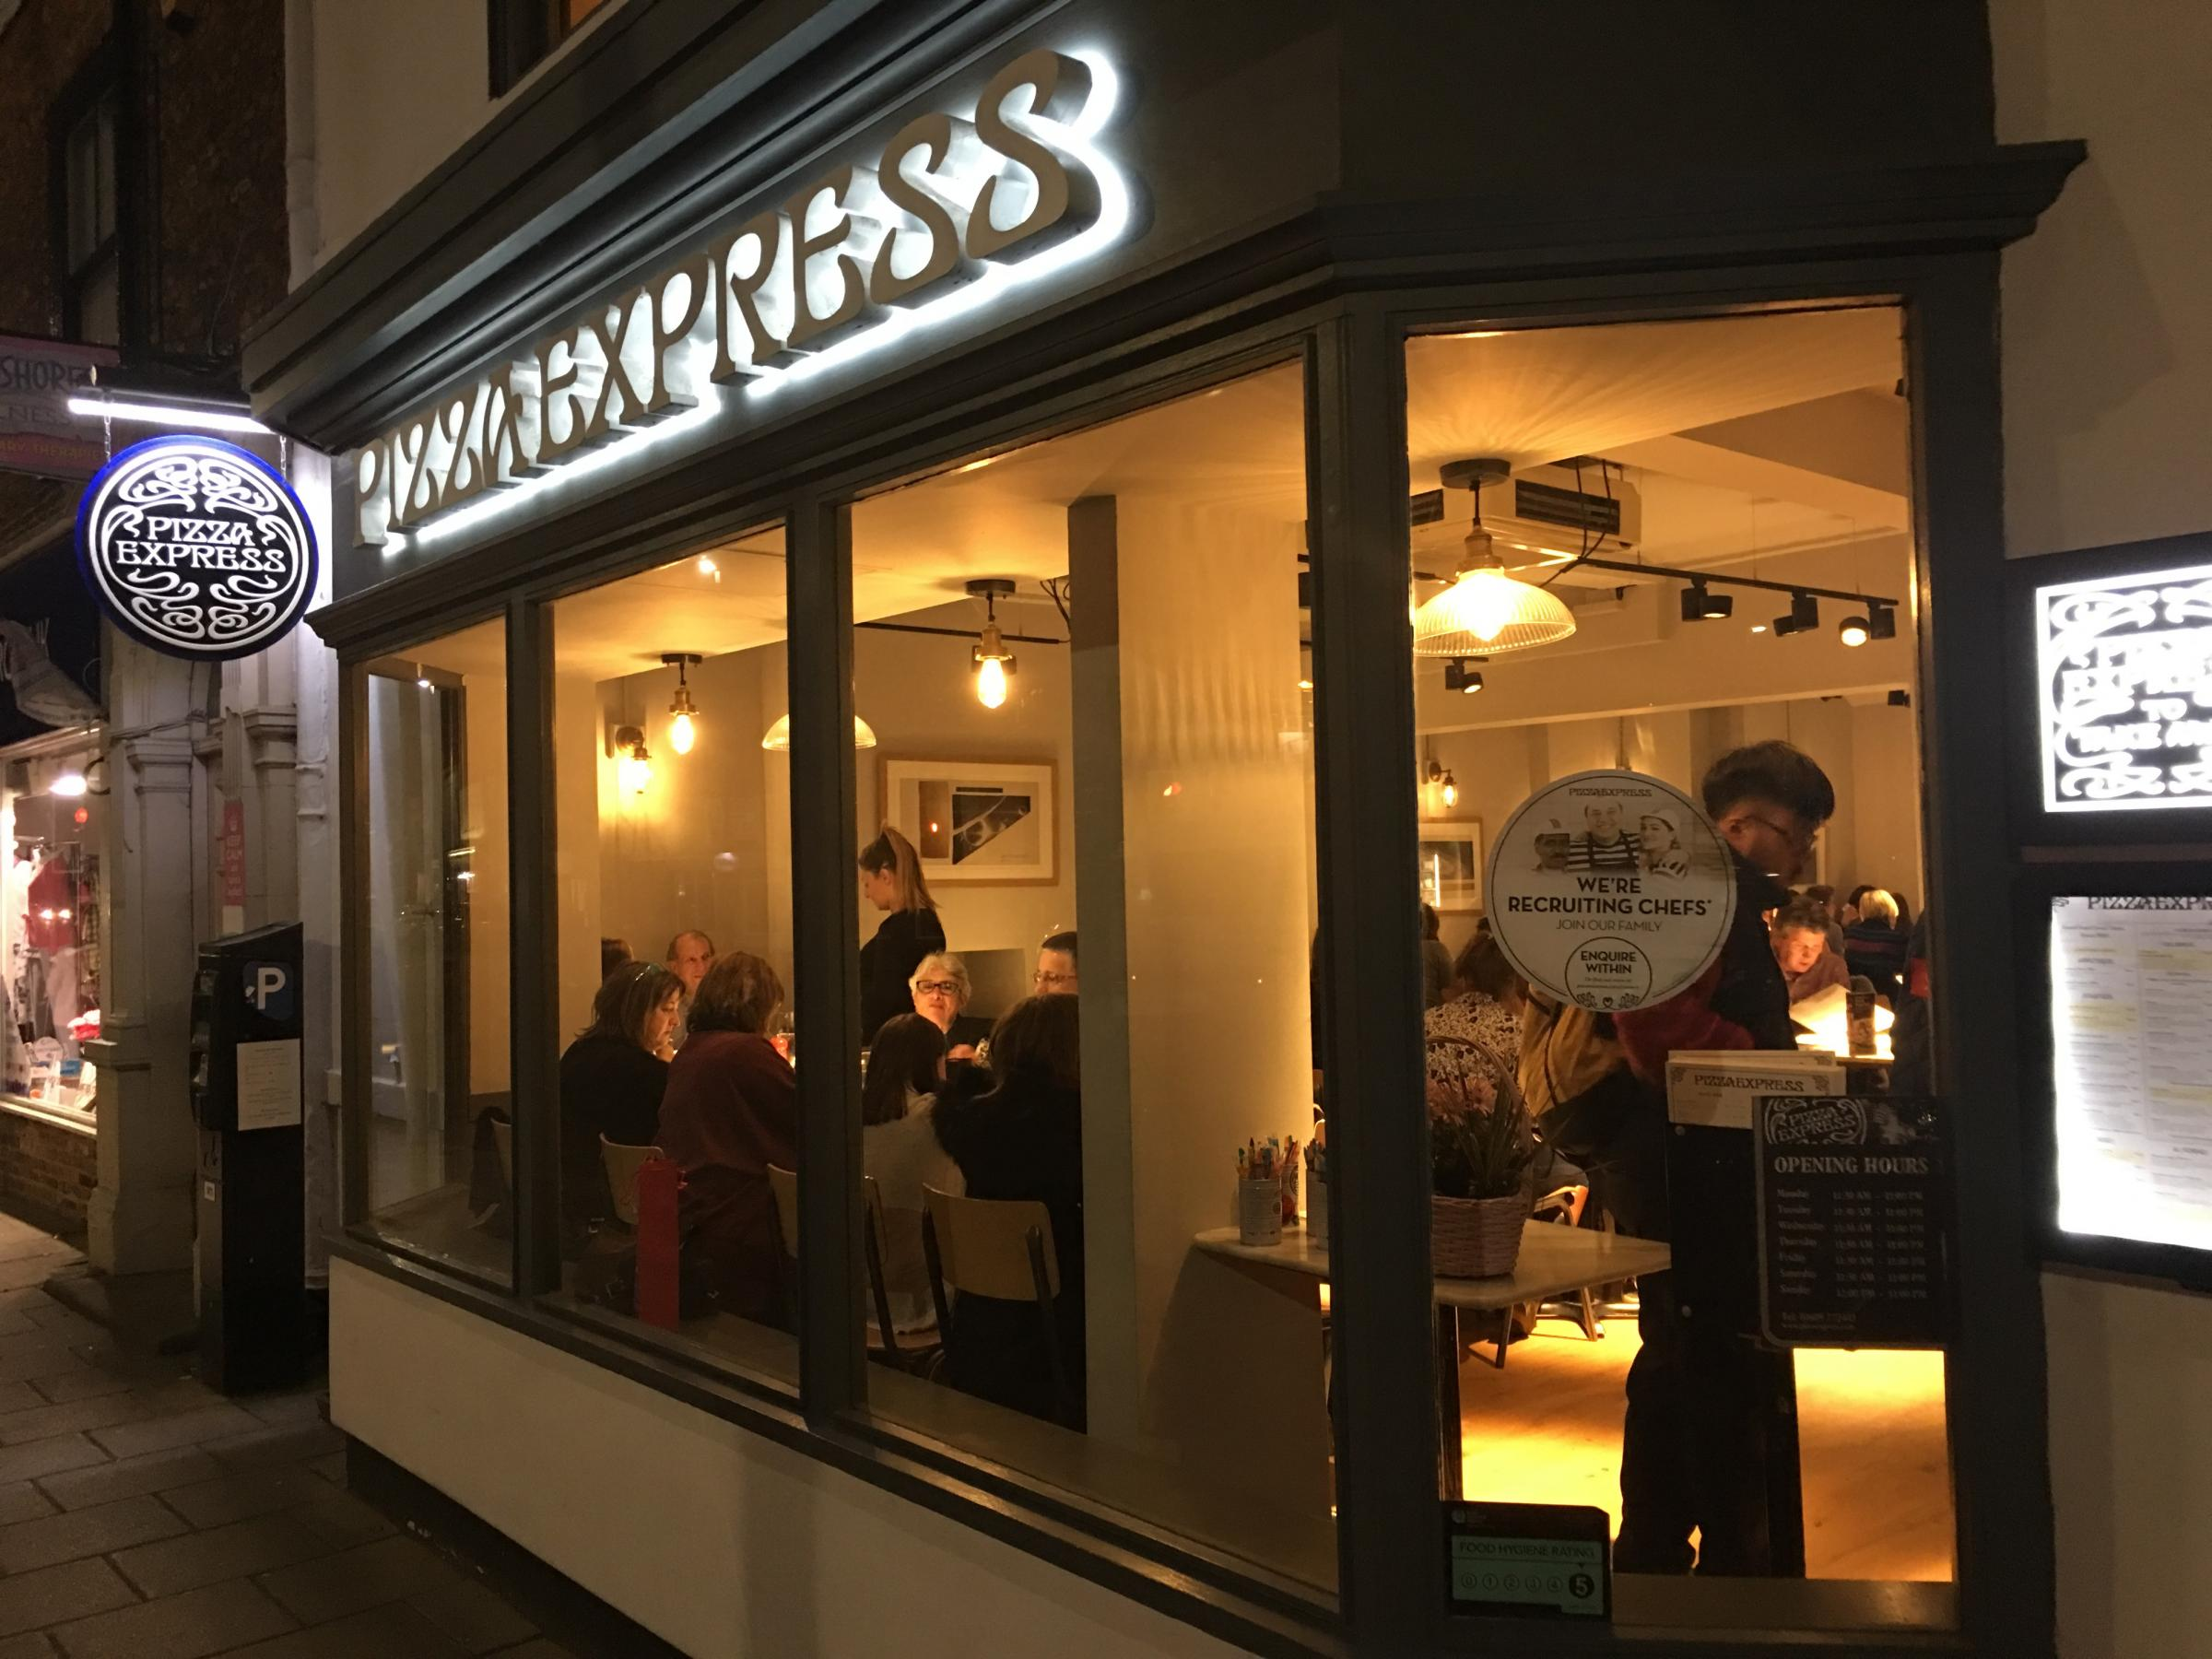 Review: Pizza Express, Northallerton